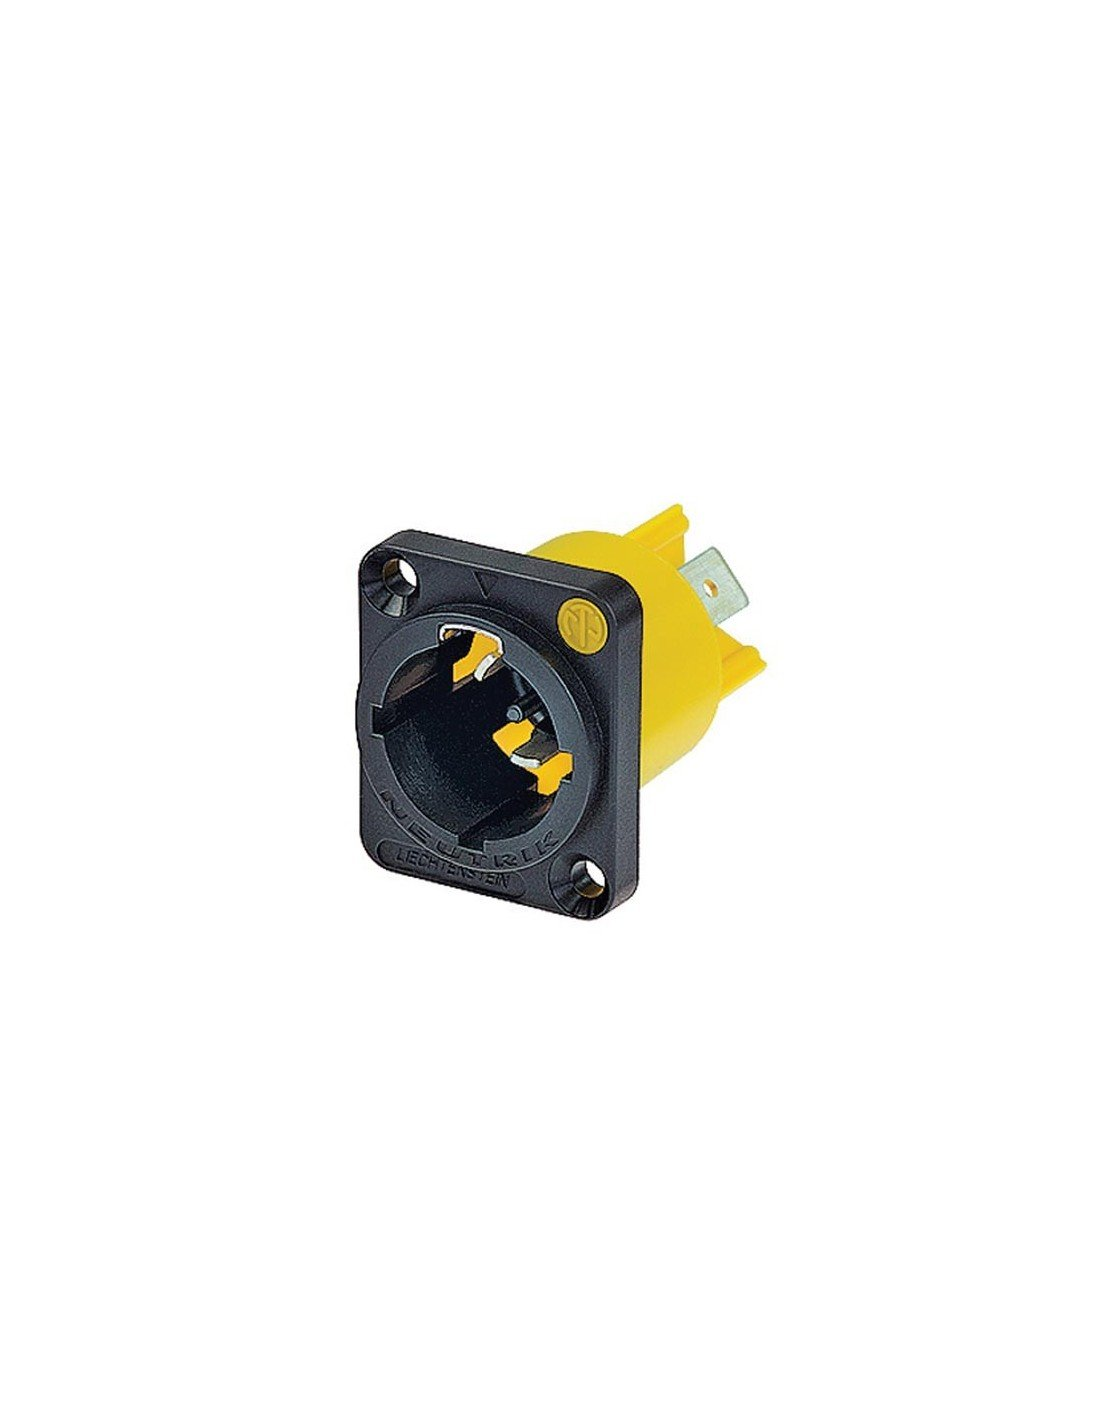 Neutrik 166437 Powercon True1 Chassis Plug 16 A